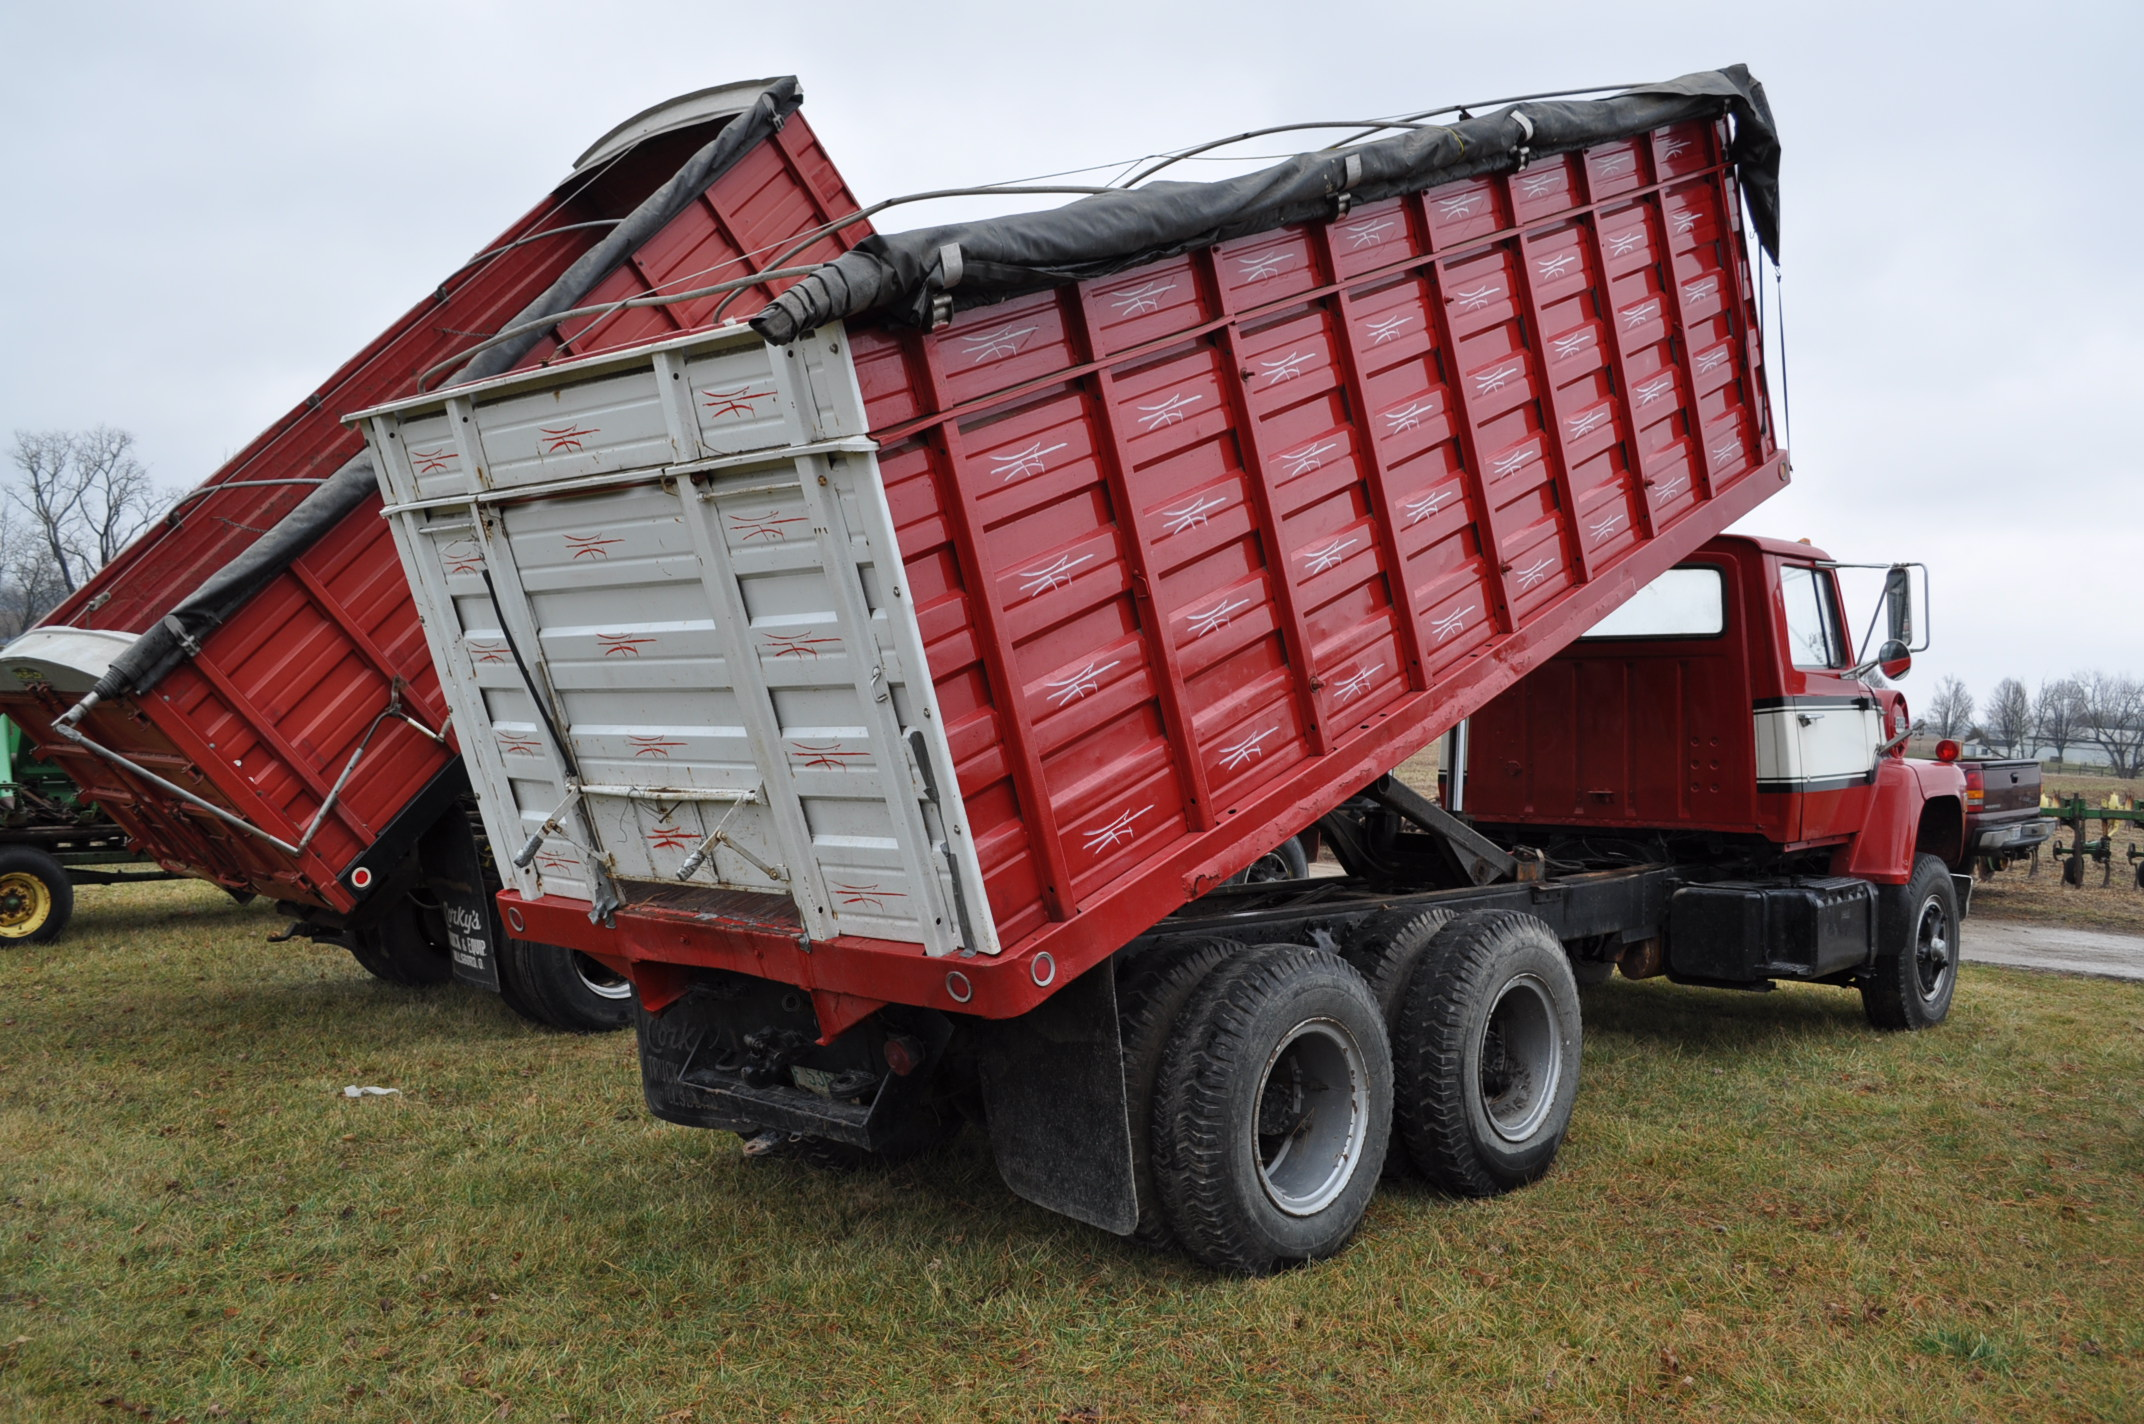 1974 Ford 900 grain truck, tandem axle, gas V-8, 5 + 2, 10.00-20 tires, 18' wood floor, pto, - Image 3 of 26